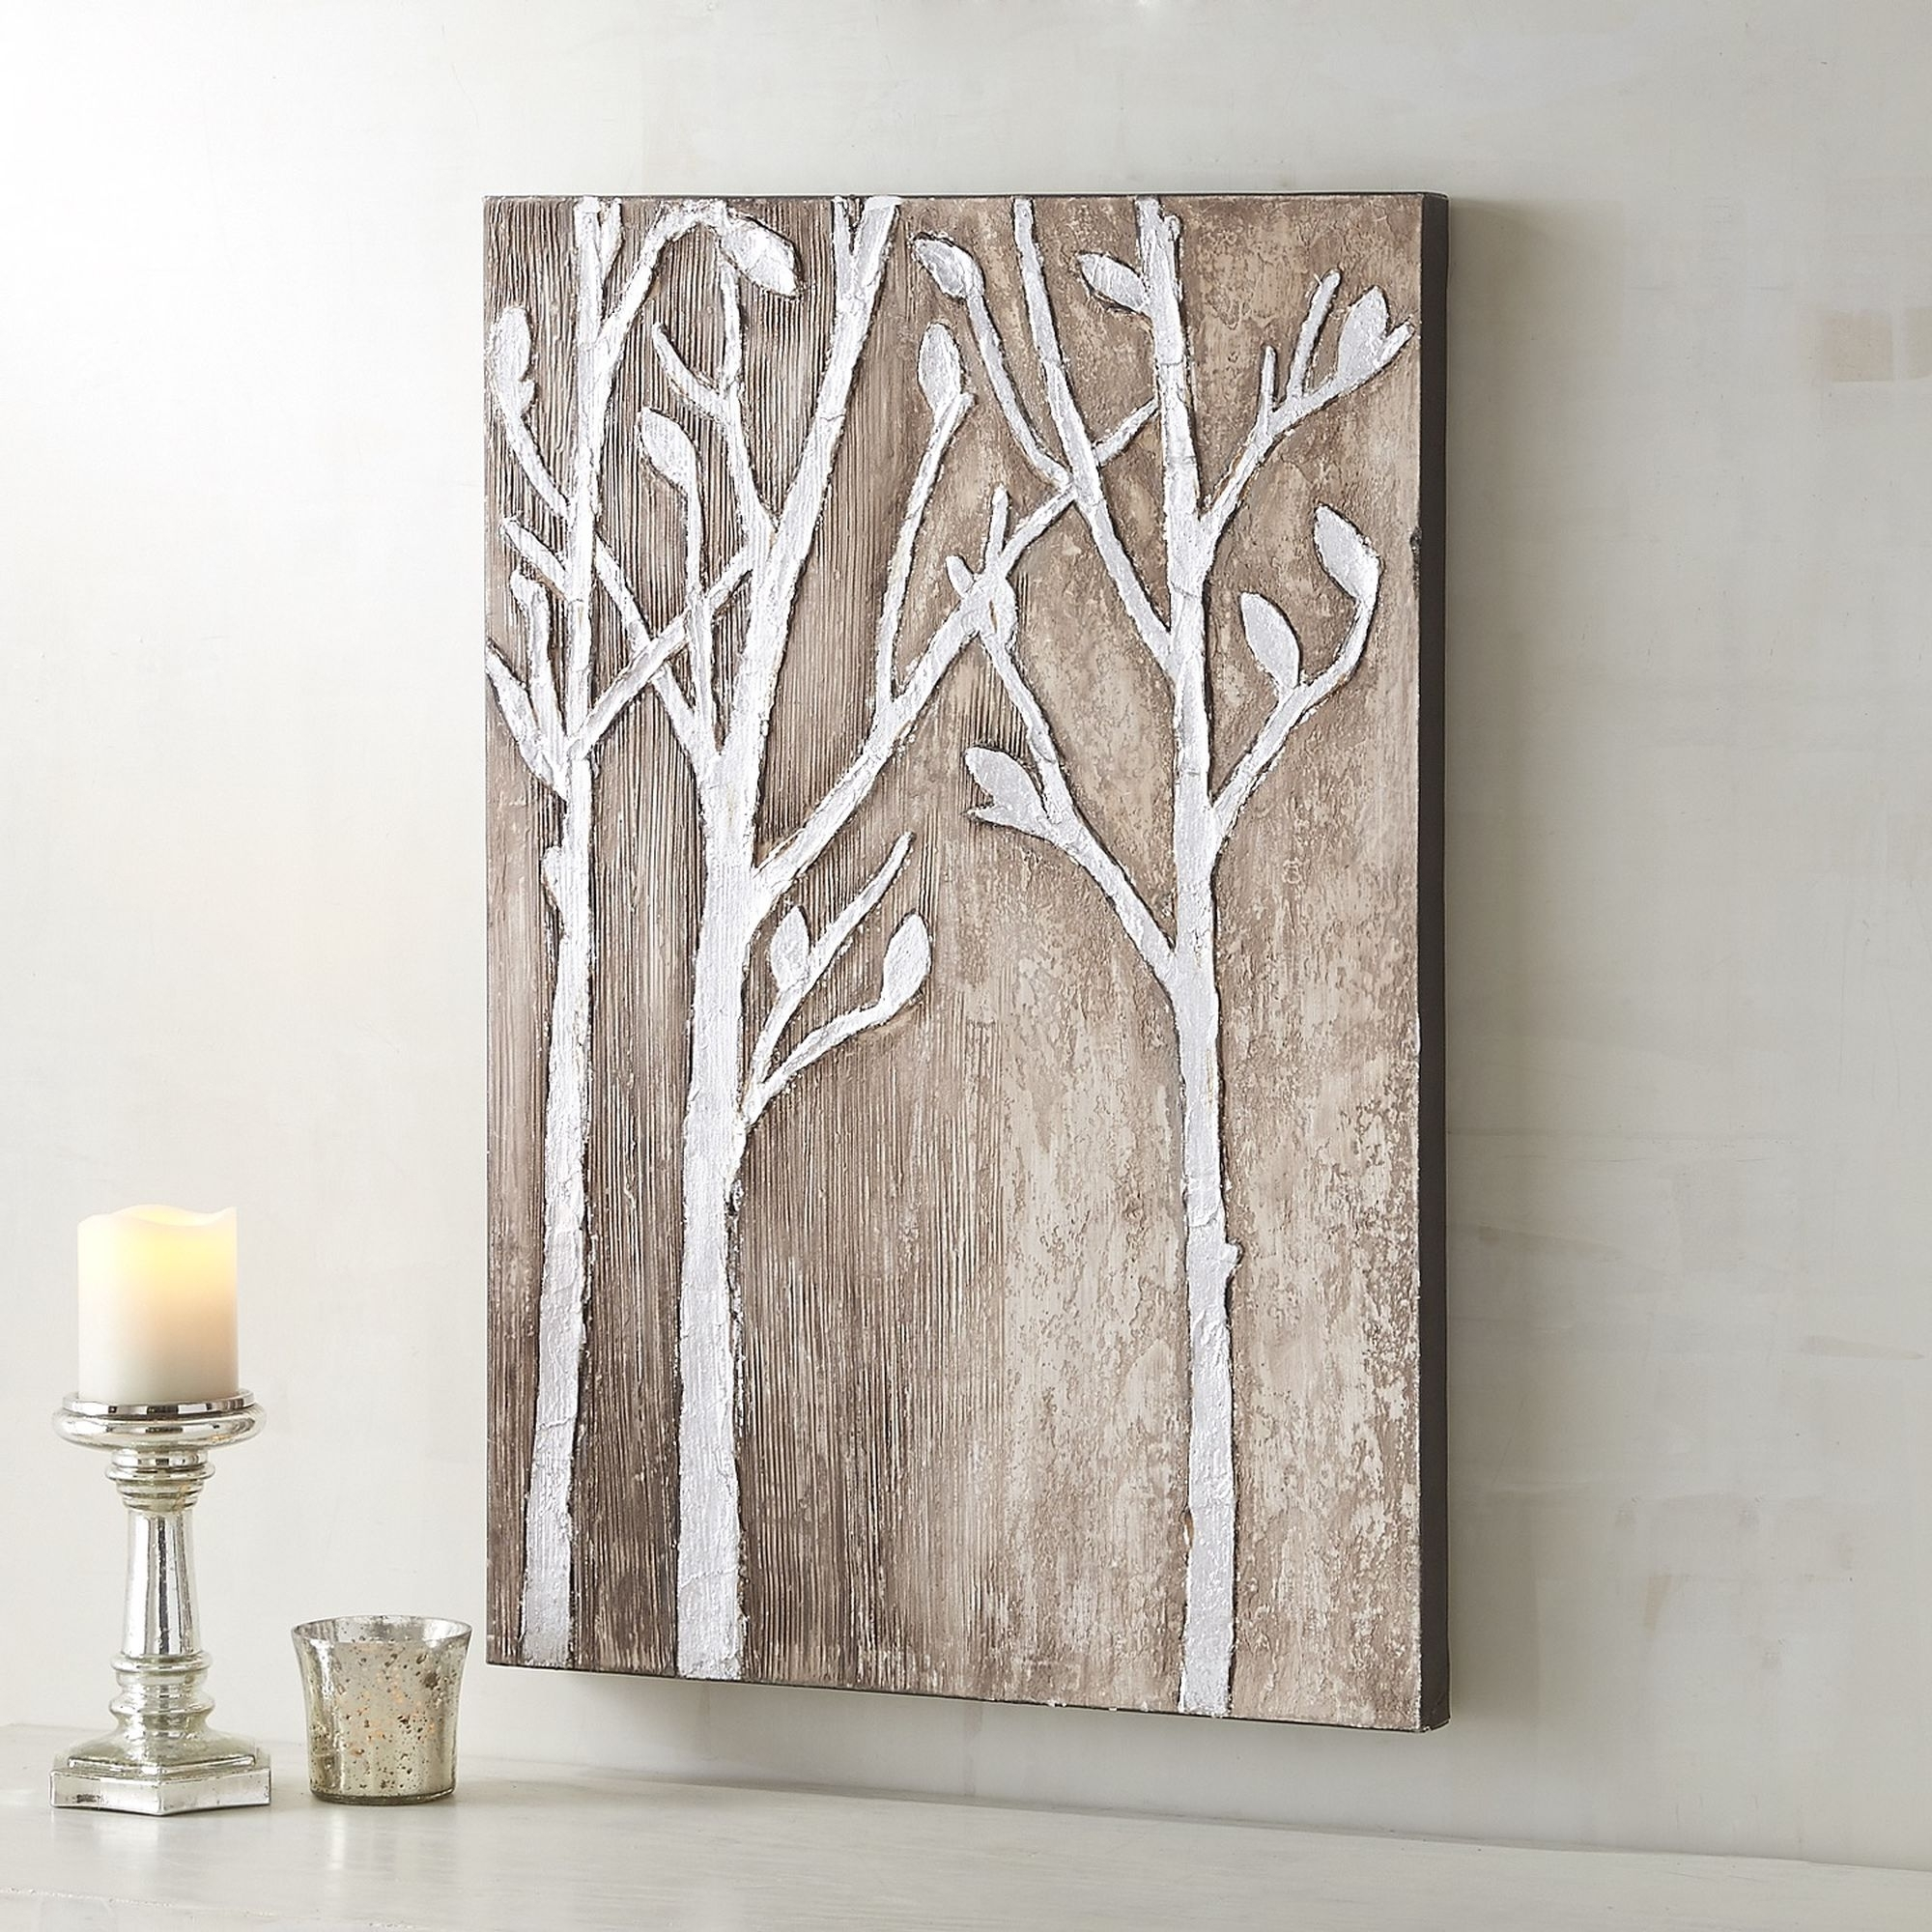 Fashionable Pier One Silver Birch Wall Art $62 Acrylic On Canvas Wall Art (View 10 of 15)